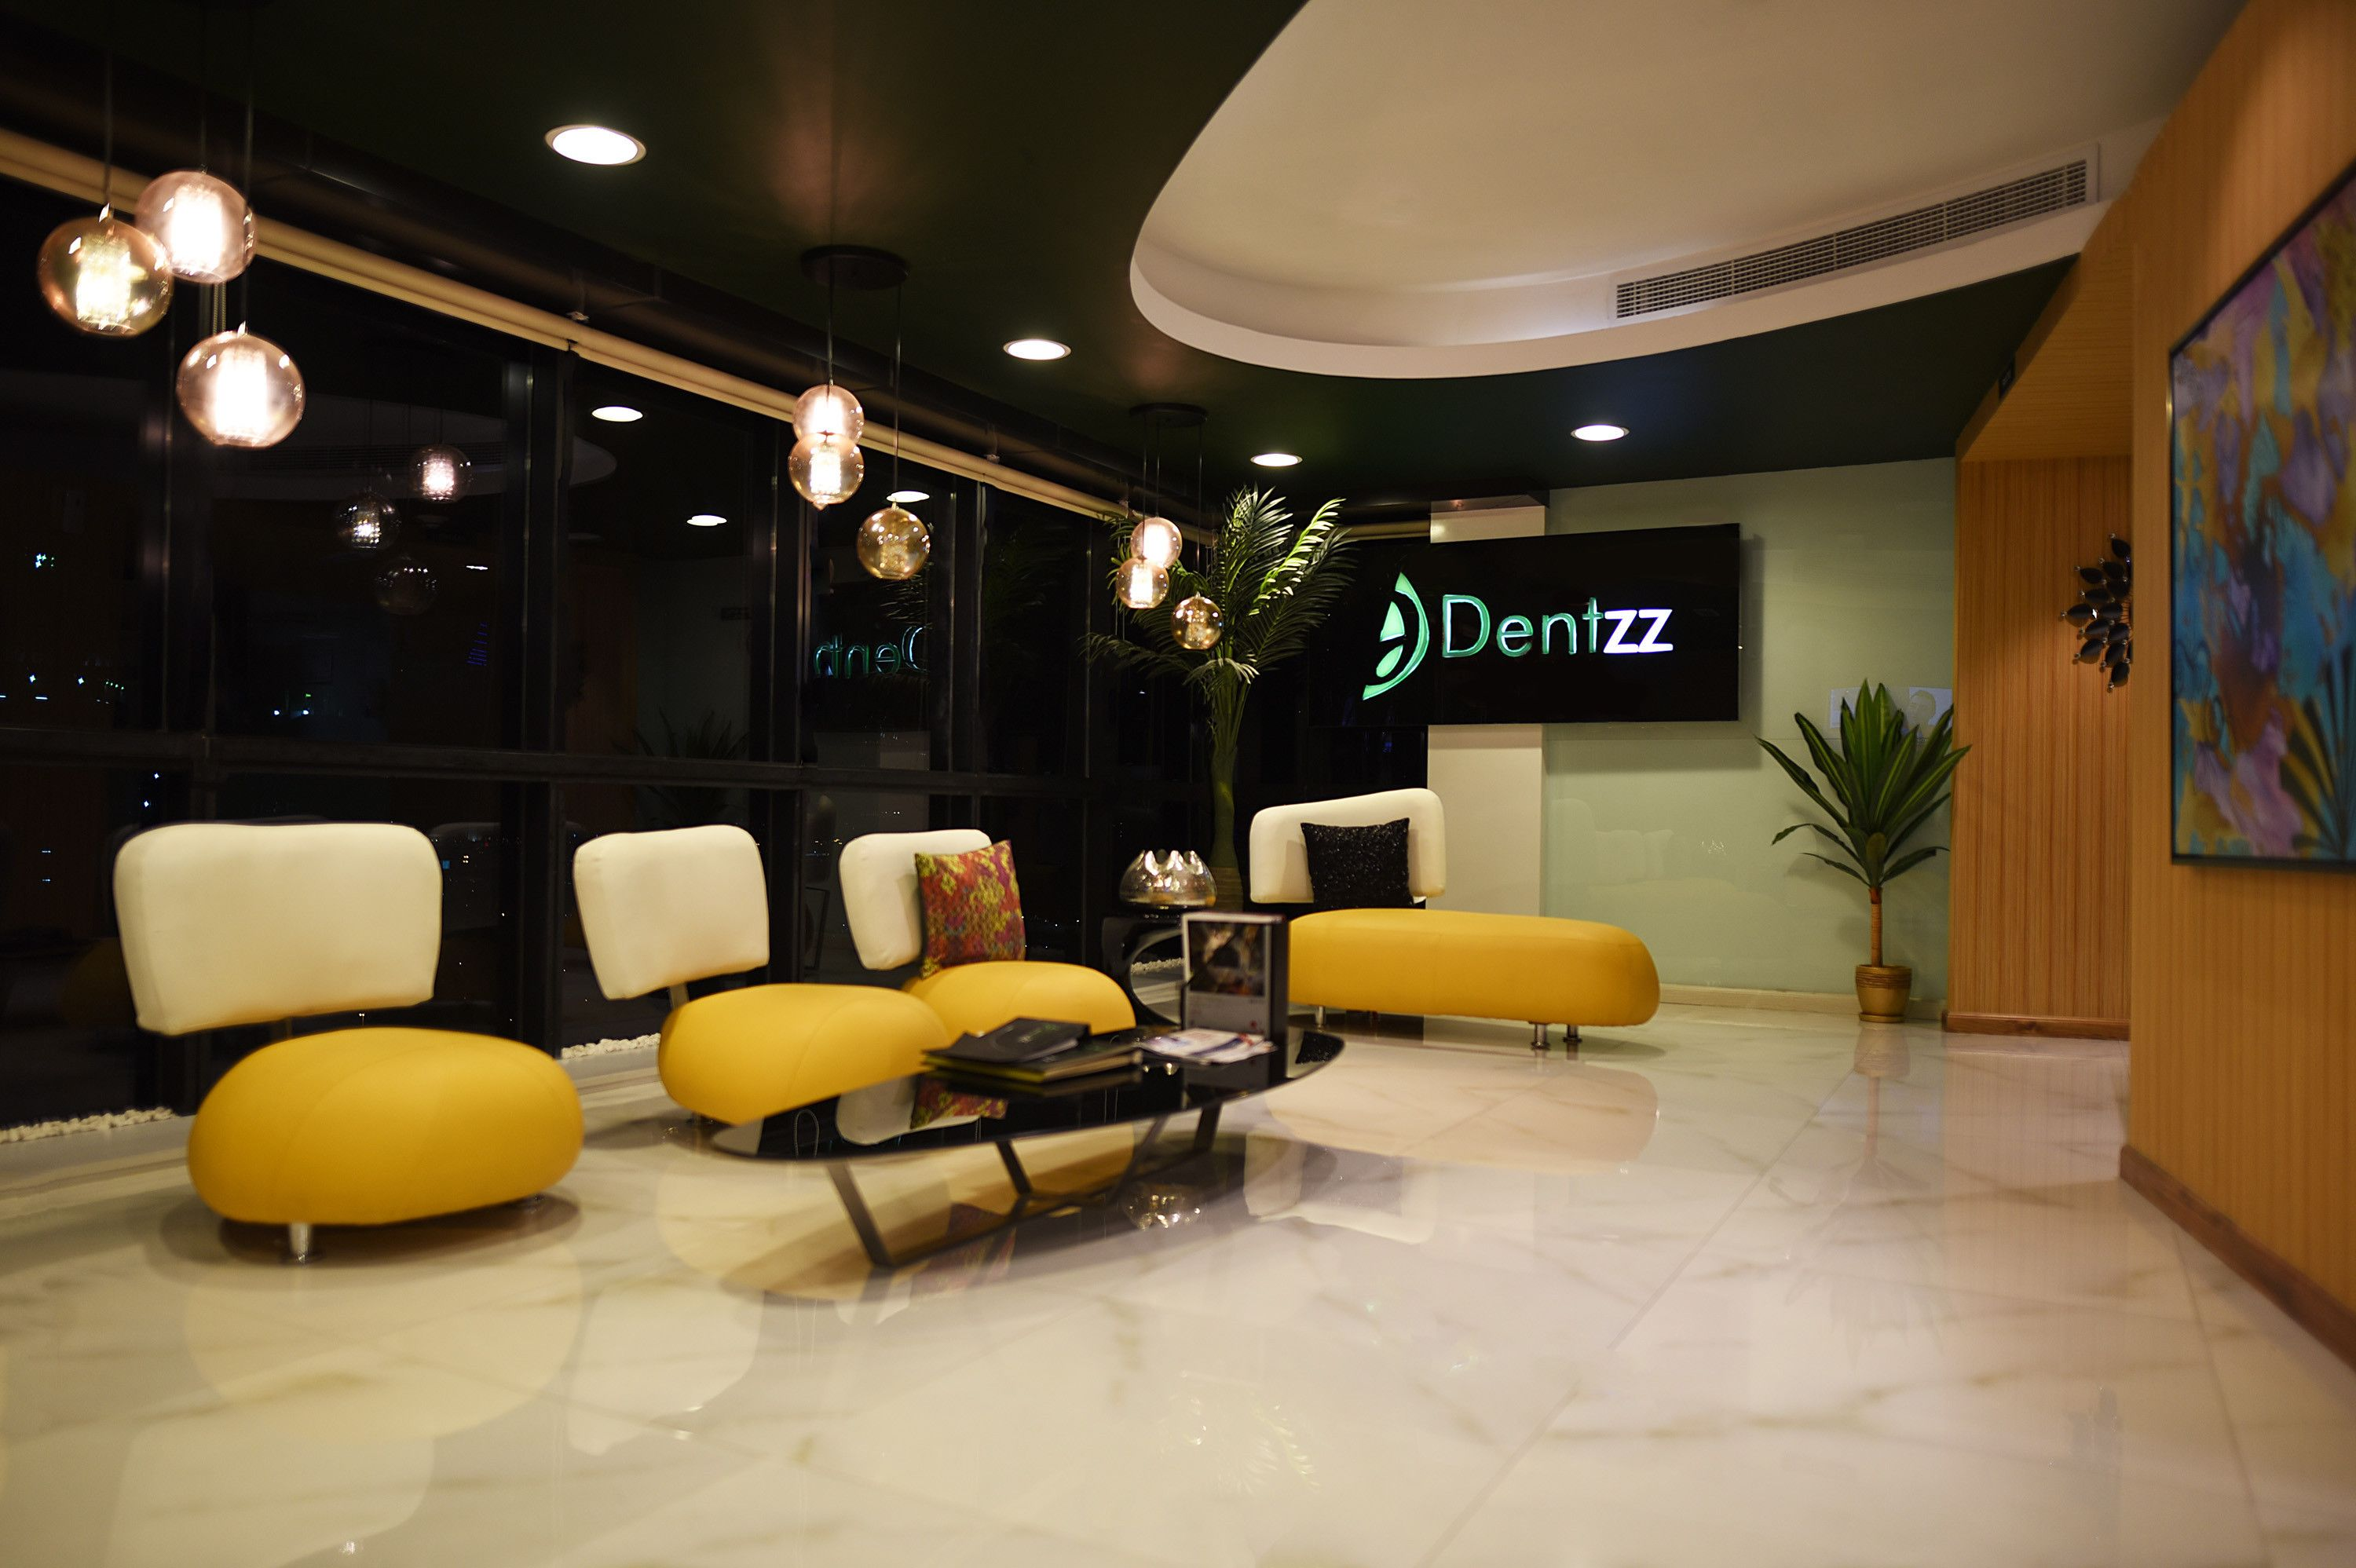 Dentzz Dental Care Centers 4